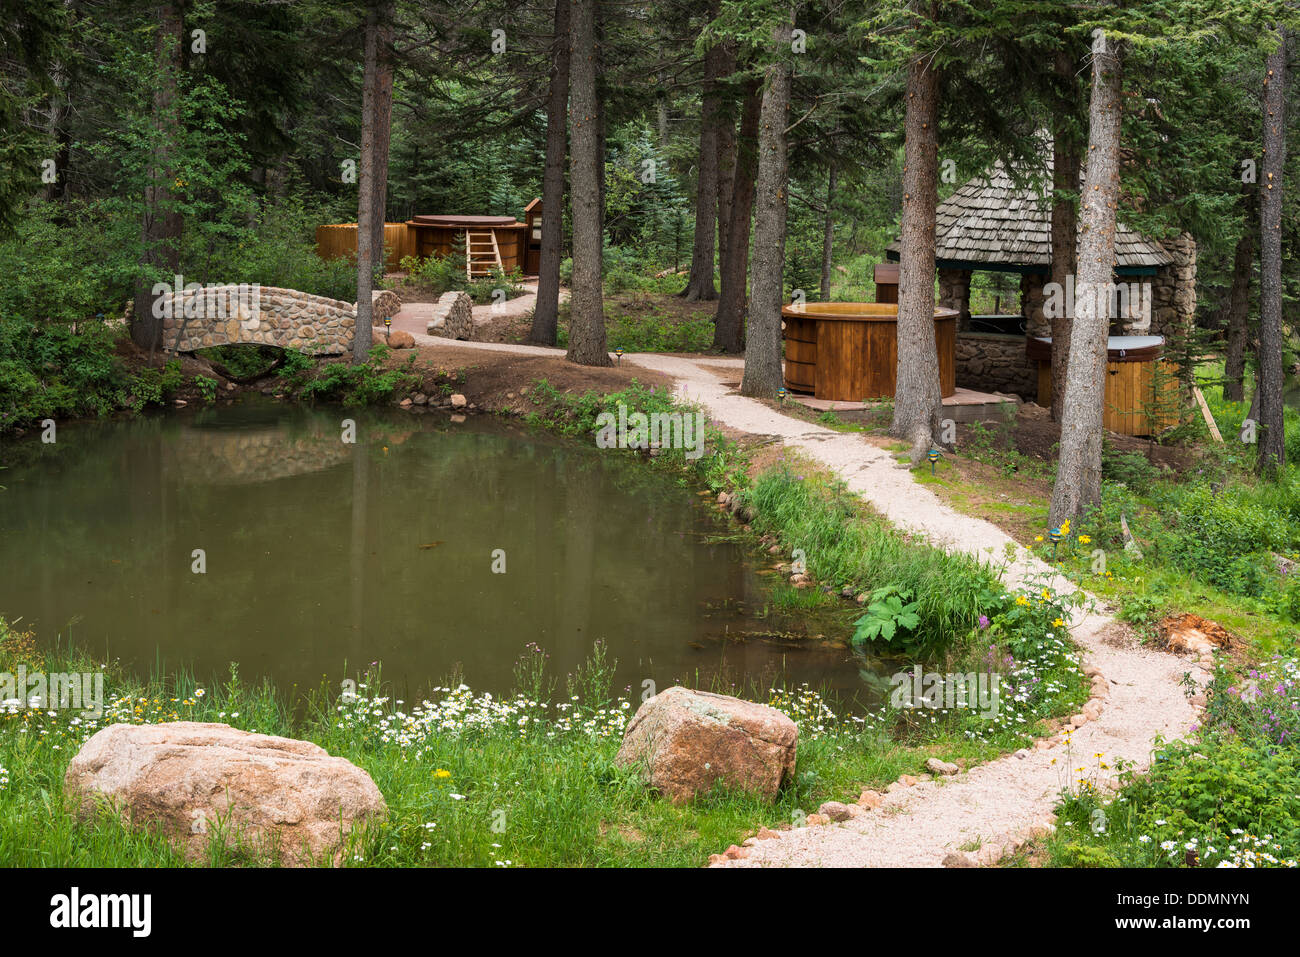 Hot Tubs Stock Photos & Hot Tubs Stock Images - Alamy